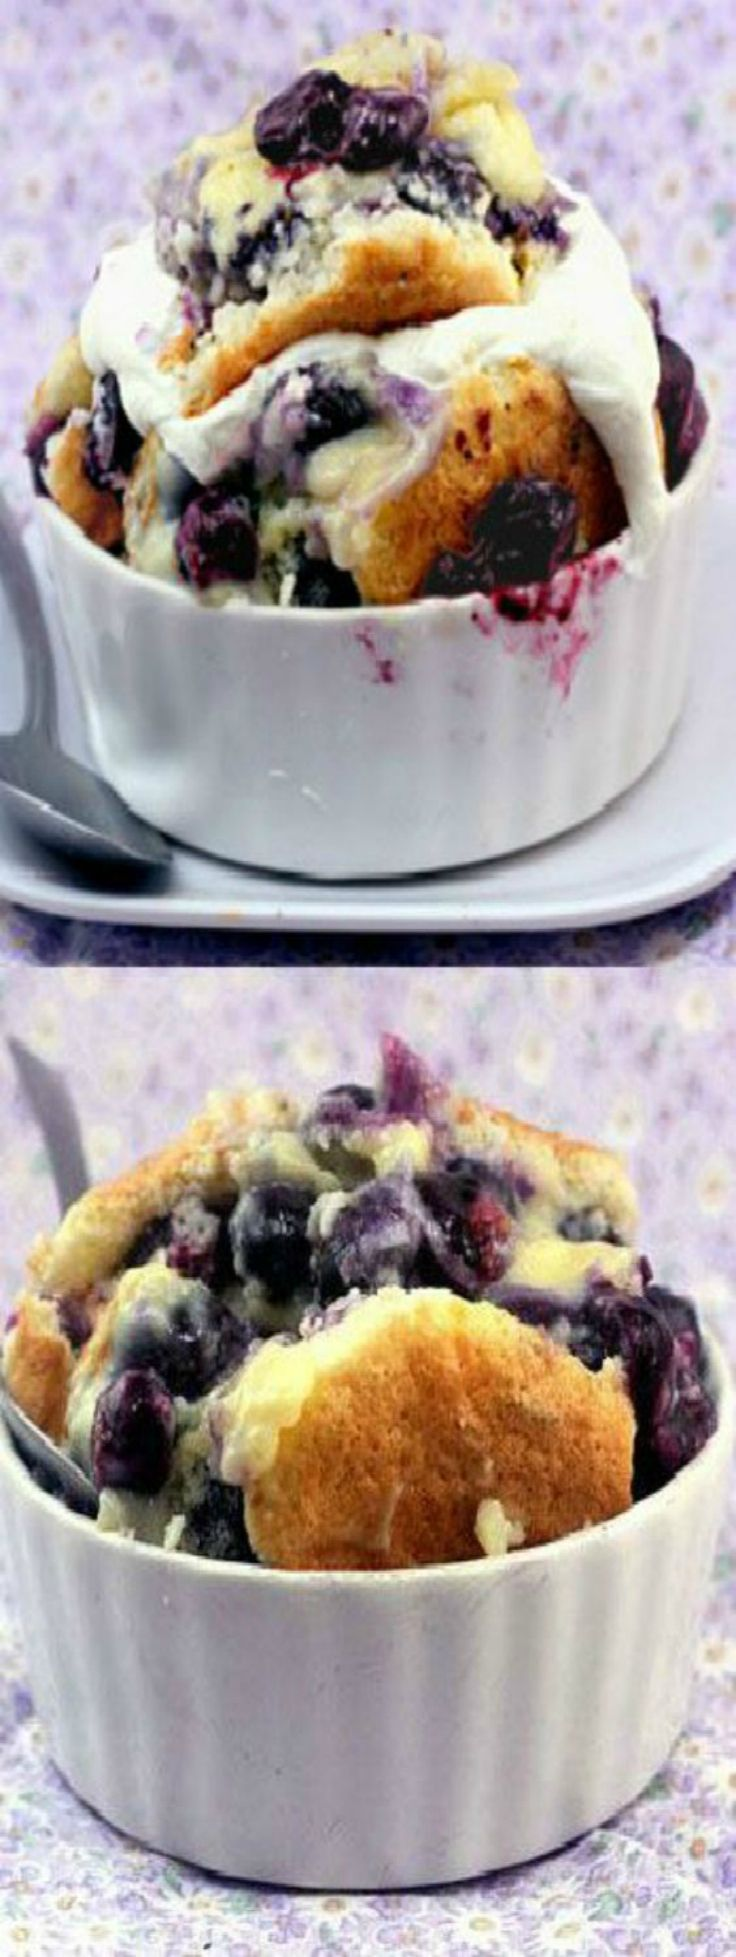 Magic Blueberry Custard Pudding Cake - One batter morphs into cake, pudding and blueberry filling.